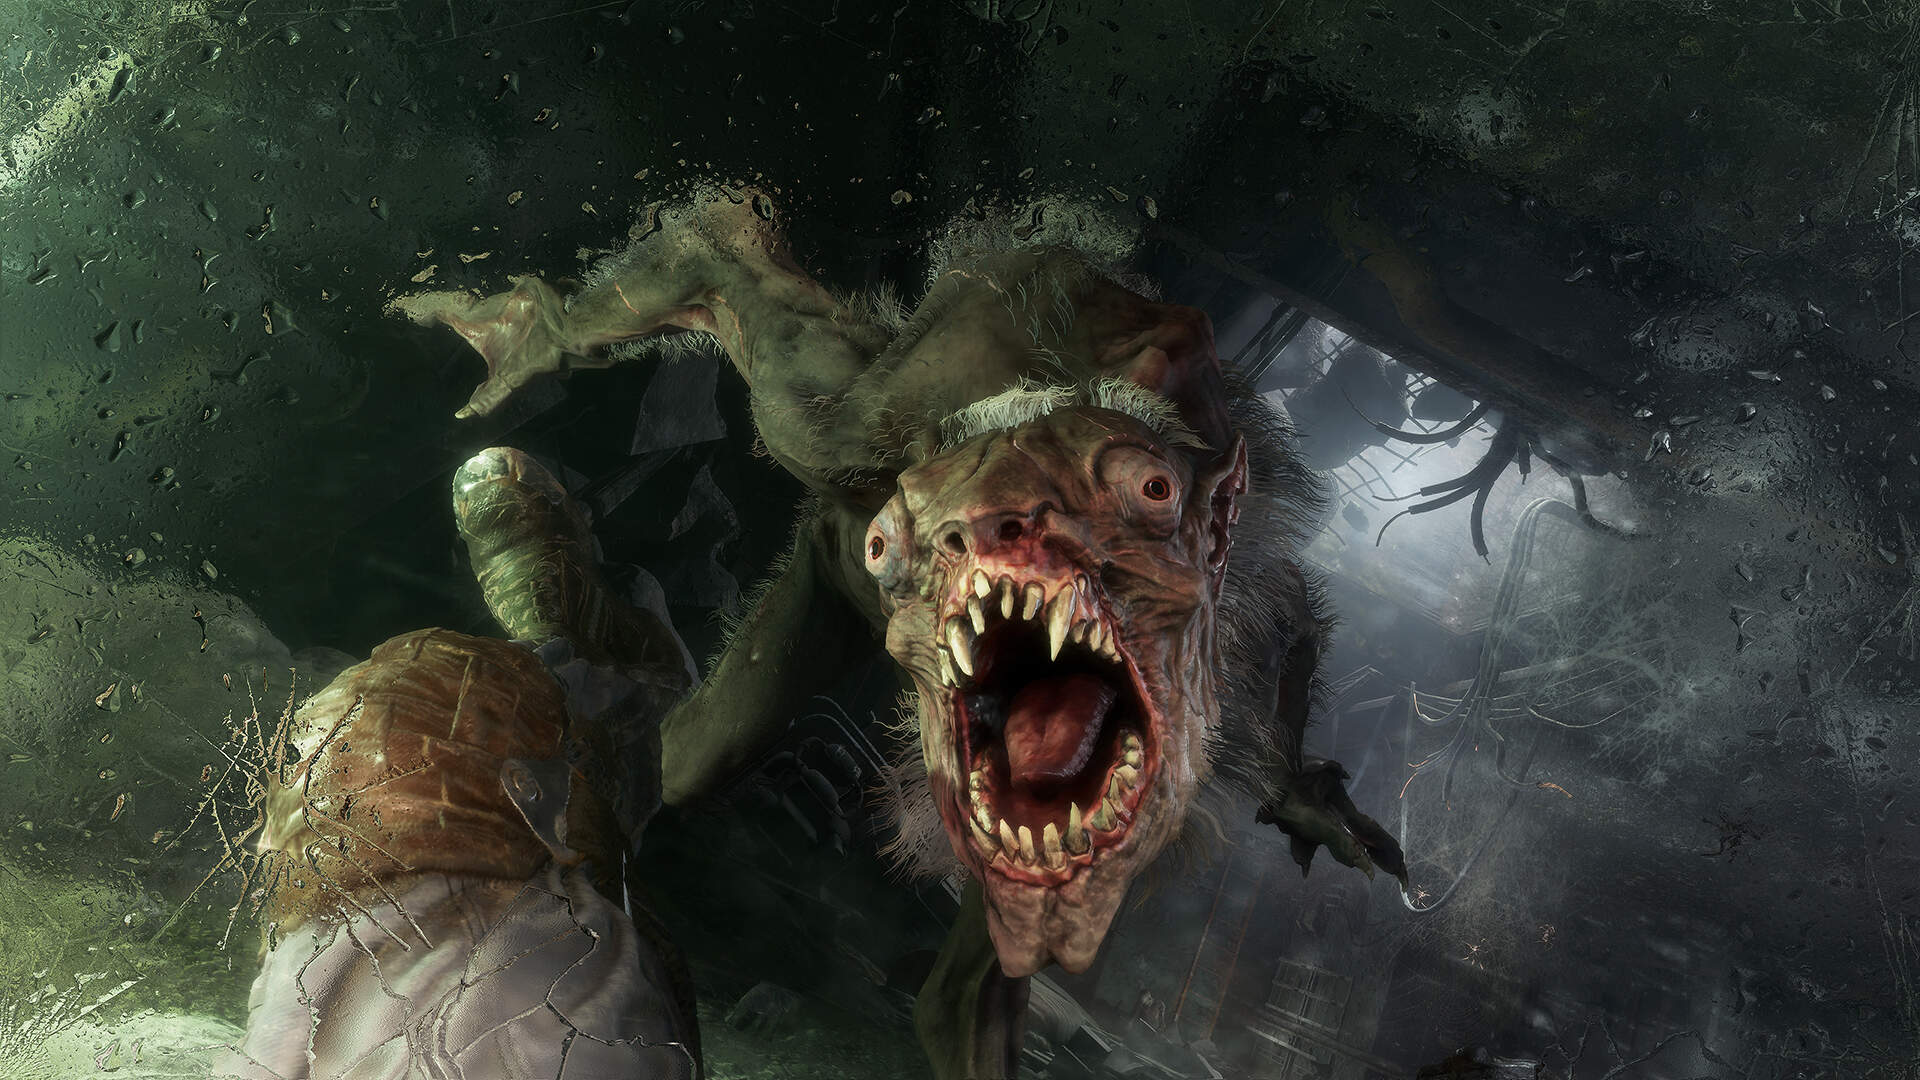 A Timeline of How Metro Exodus' Launch Turned Toxic